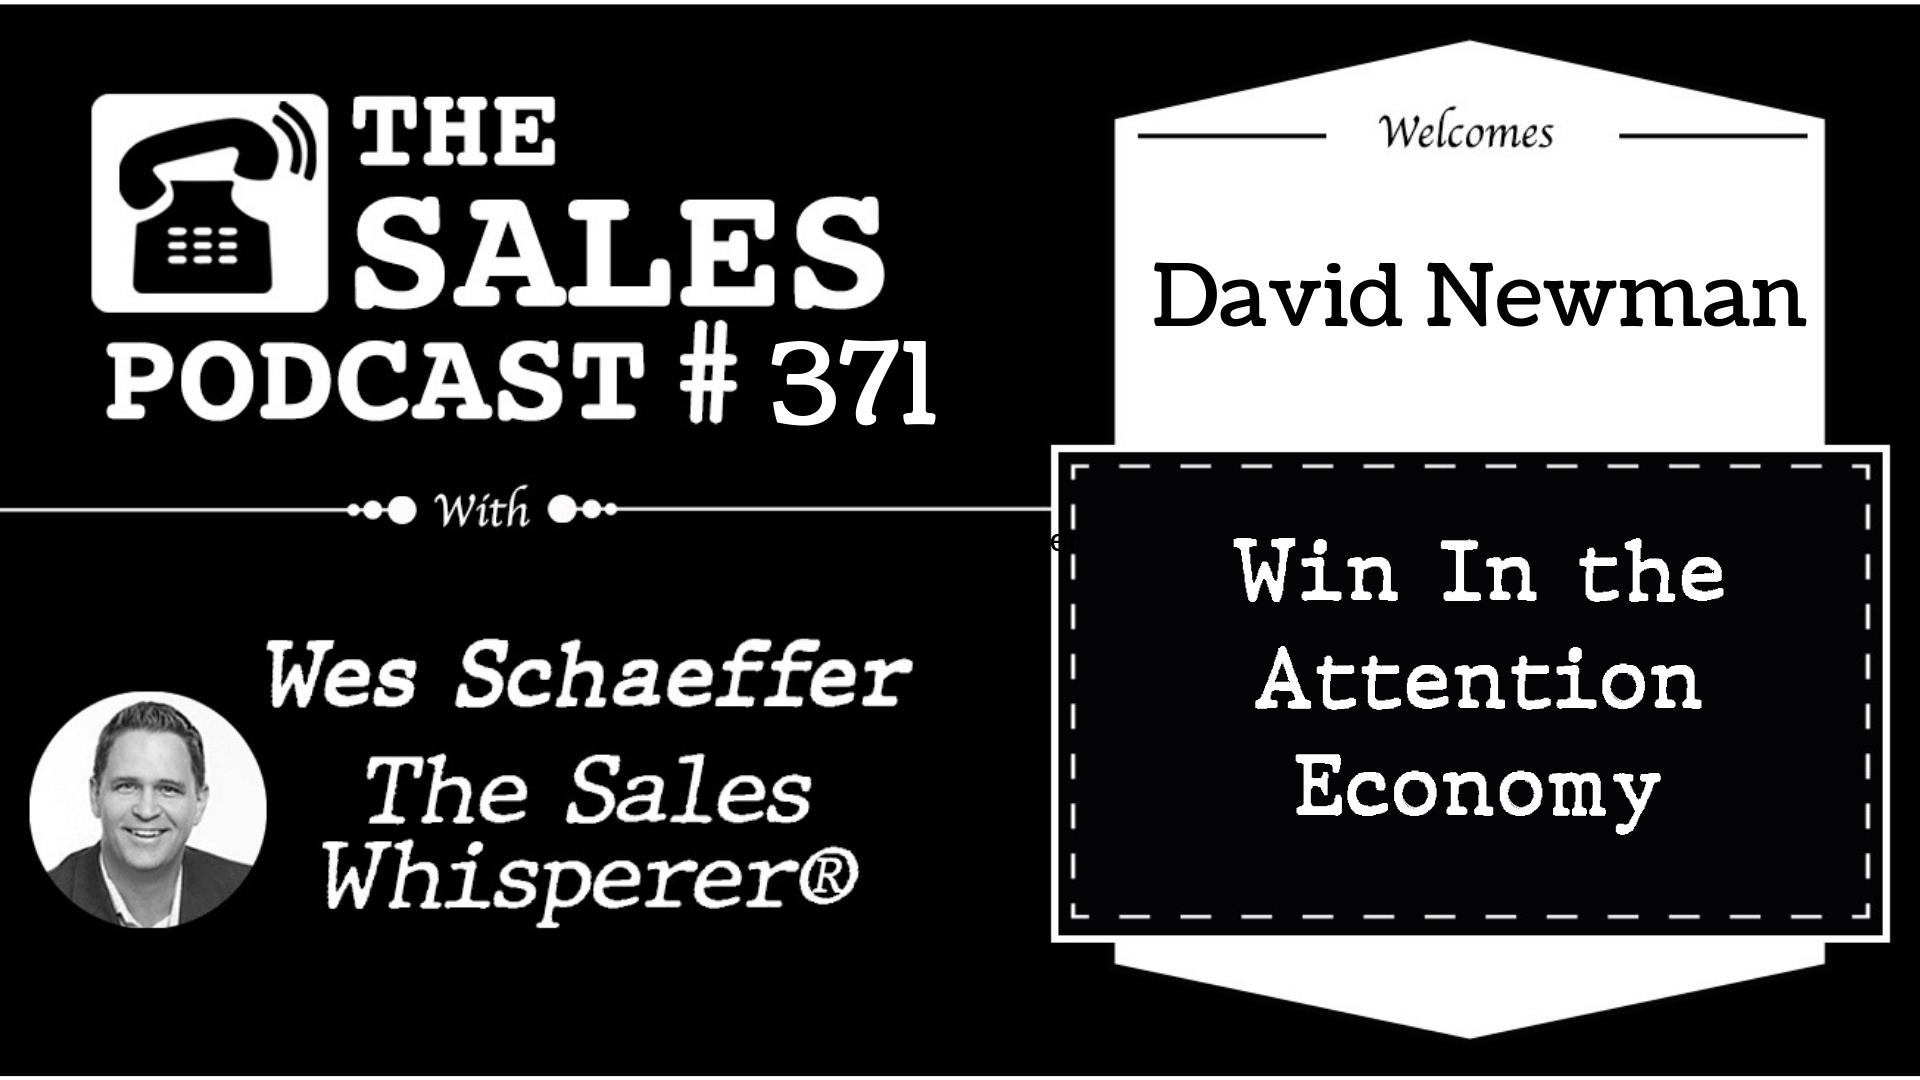 Get the Premier Position To Make More Sales With David Newman